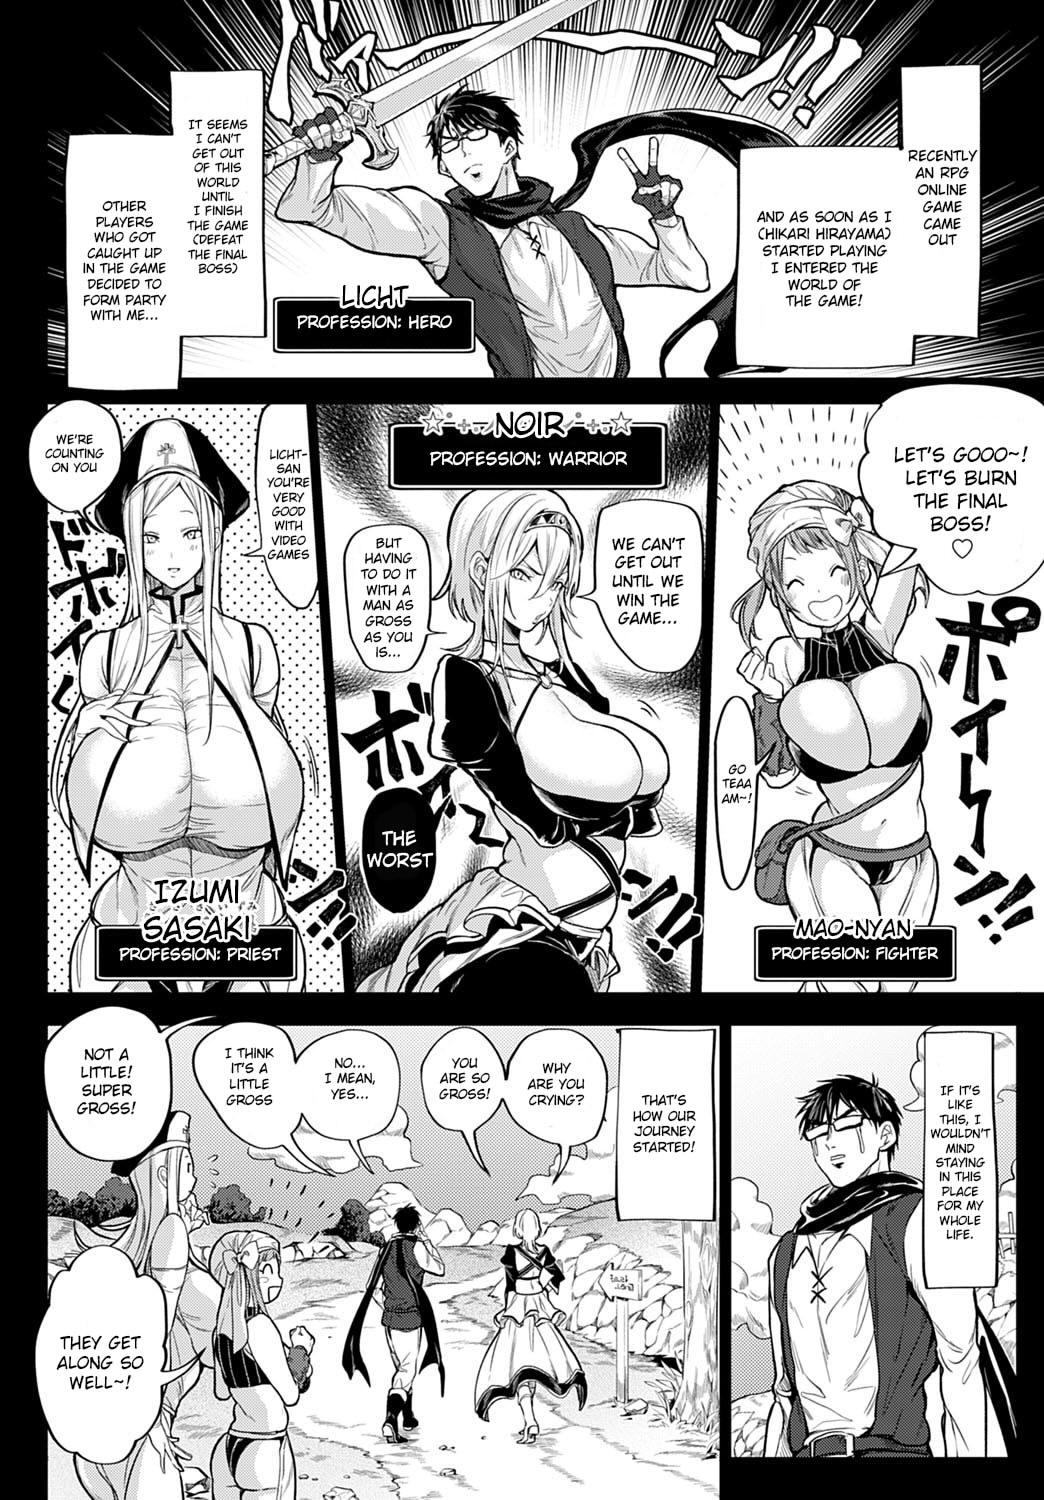 [Announ] Ore Saikyou Quest ~Isekai Harem no Sho Jou~ | My story with my Harem in another world Ch 1 (COMIC Anthurium 2020-11) [English] [Digital] 1